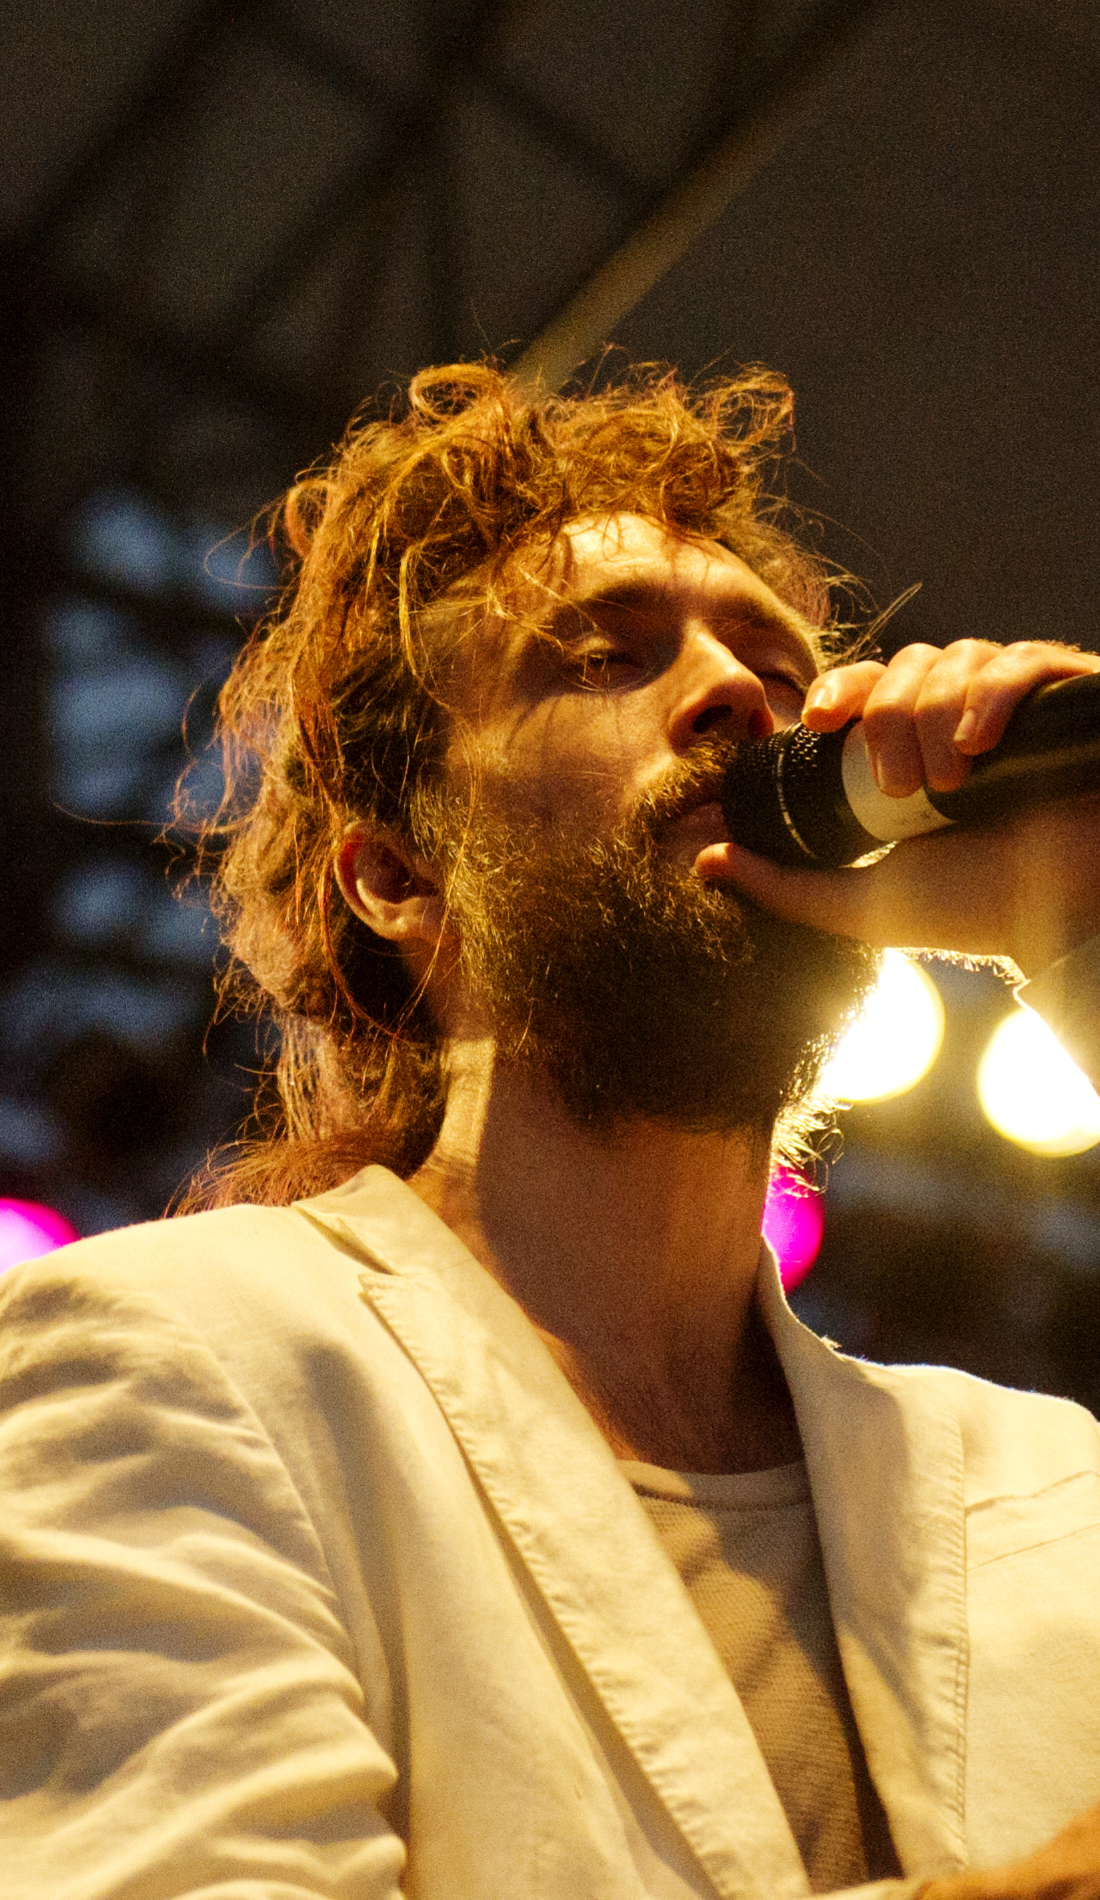 A Edward Sharpe and the Magnetic Zeros live event